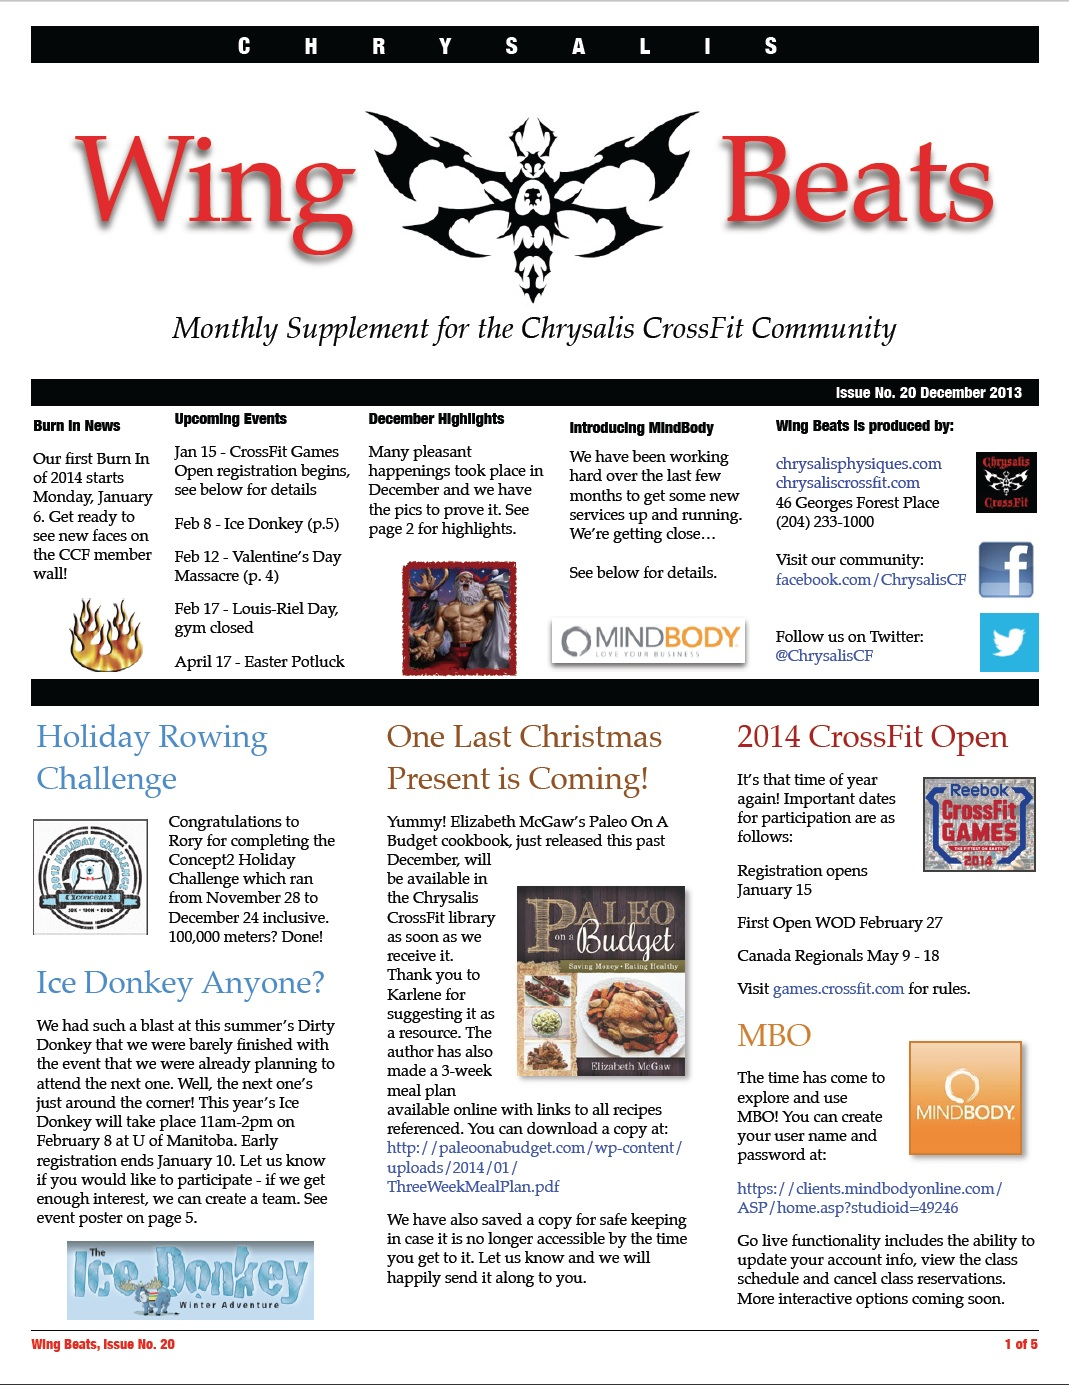 WingBeats Issue #20 - December 2013